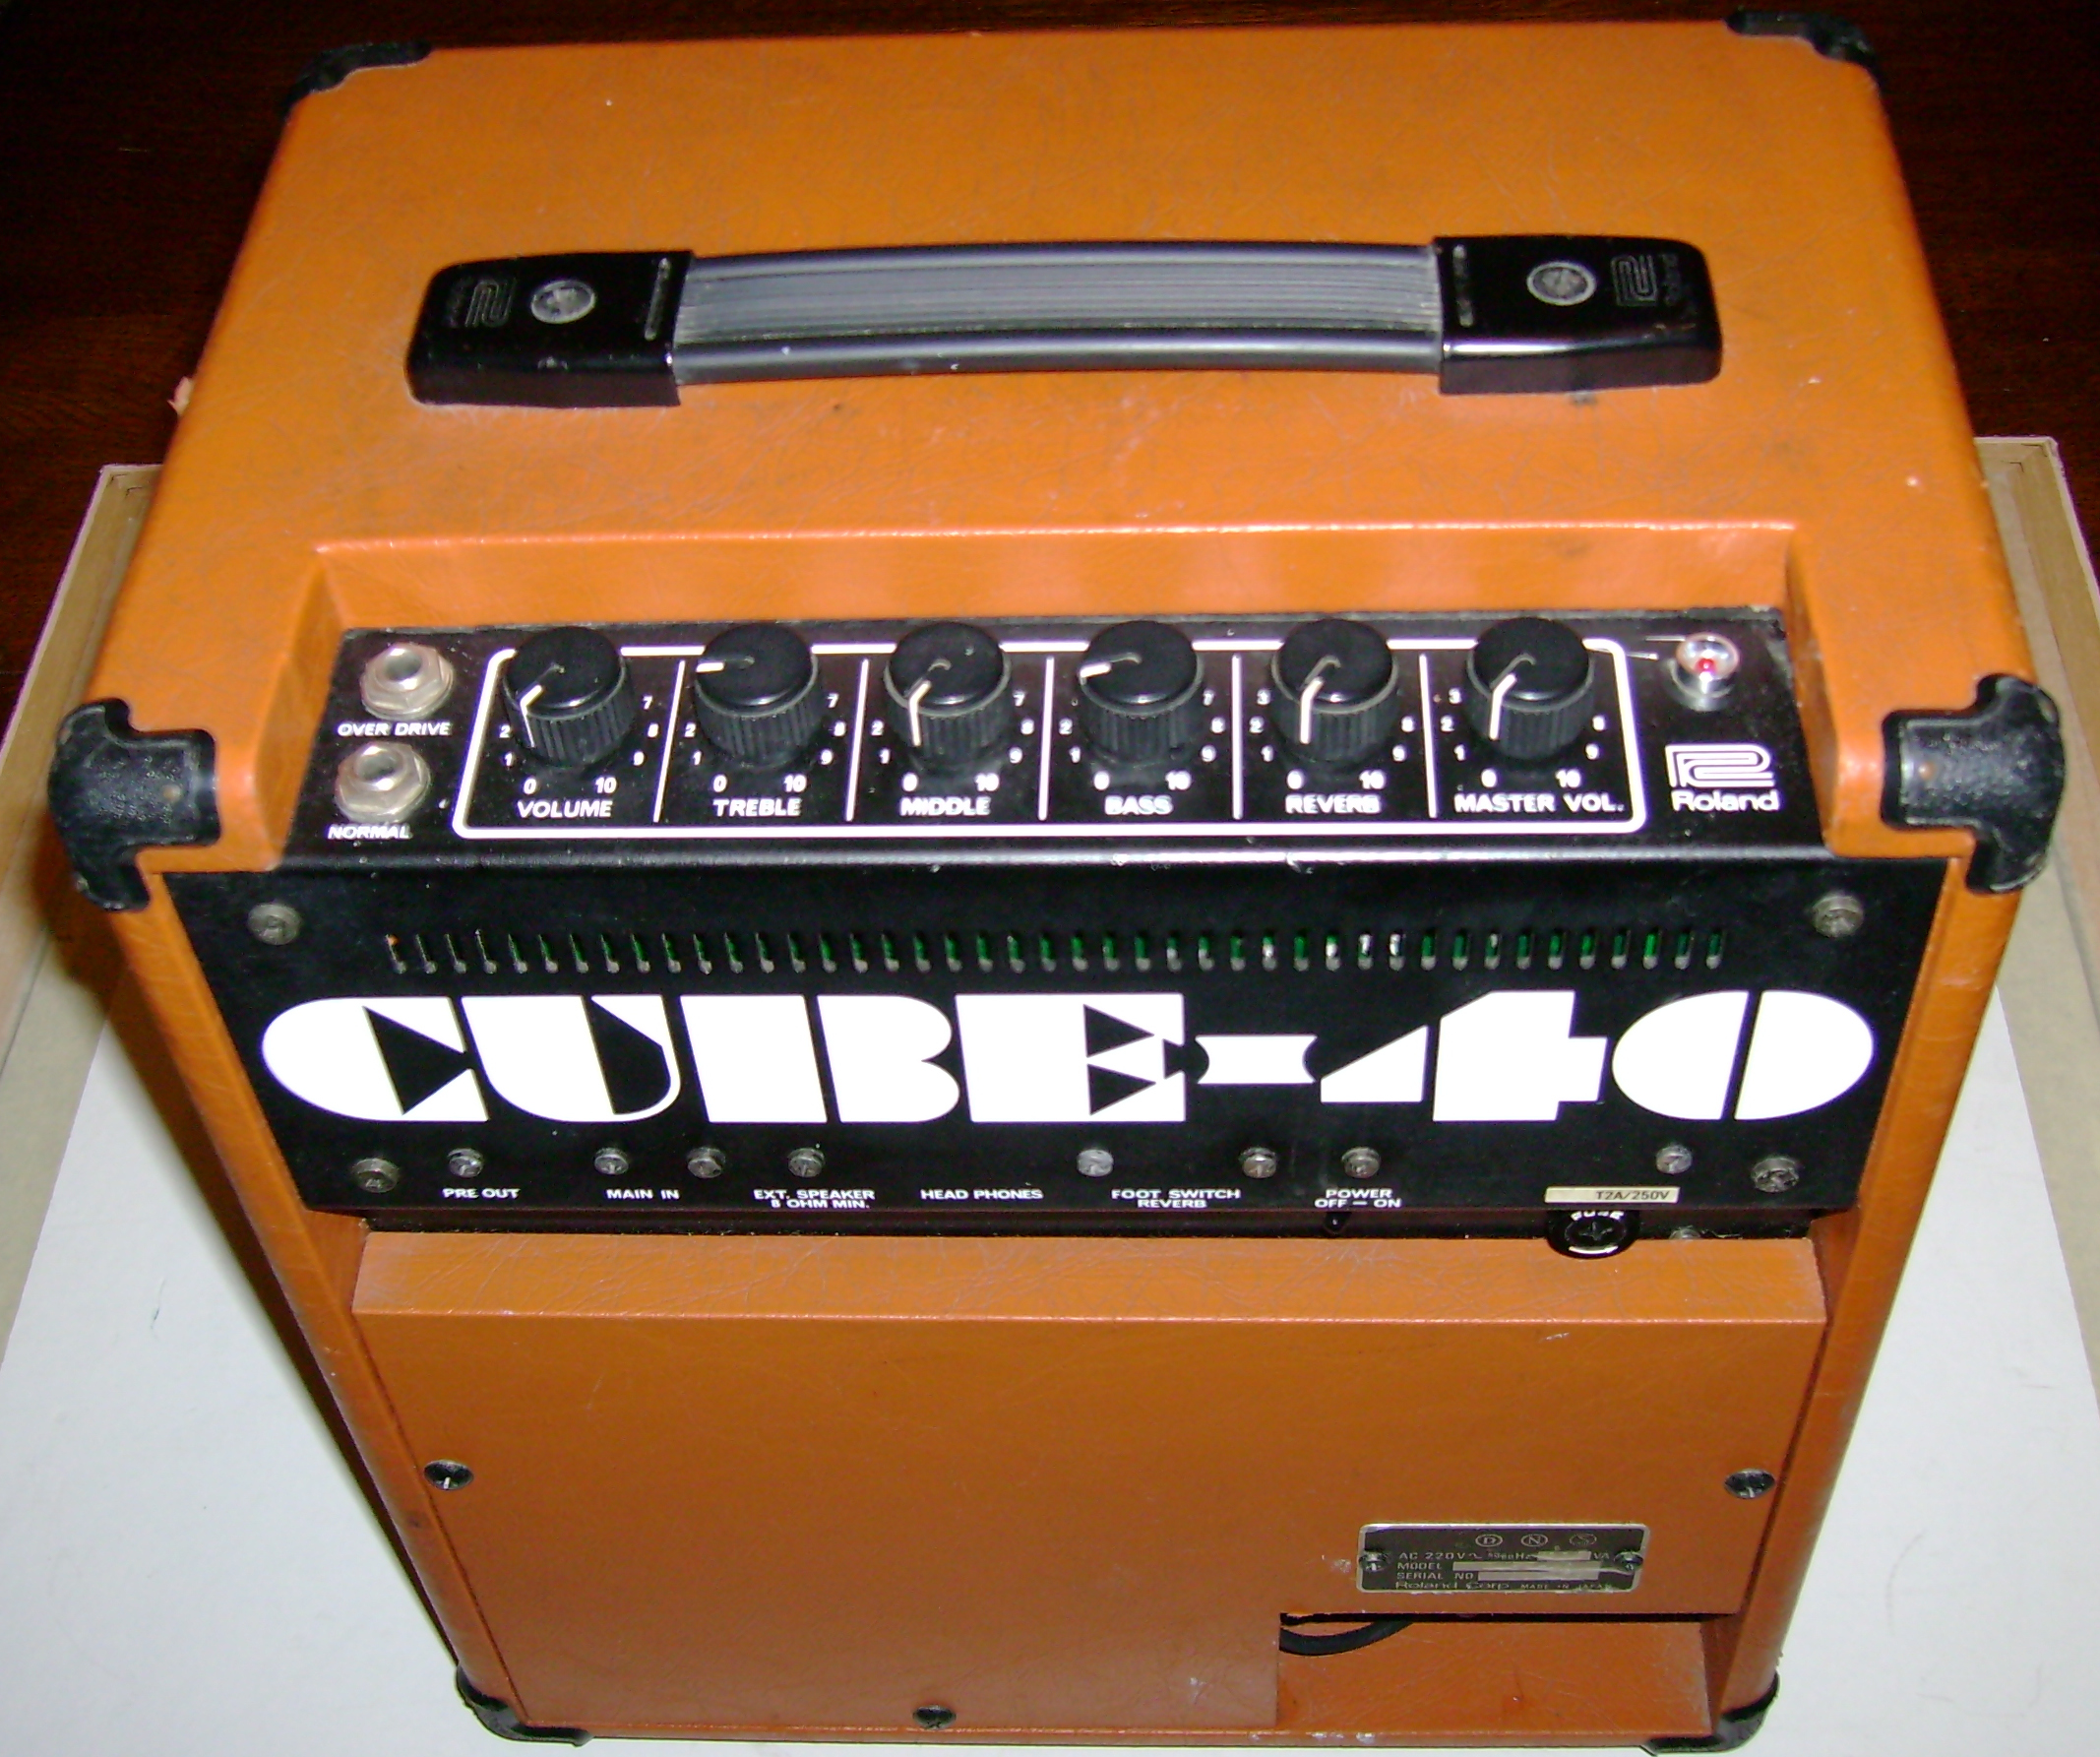 Roland Cube St R レッド ギターアンプ Battery Powered Stereo ローランド